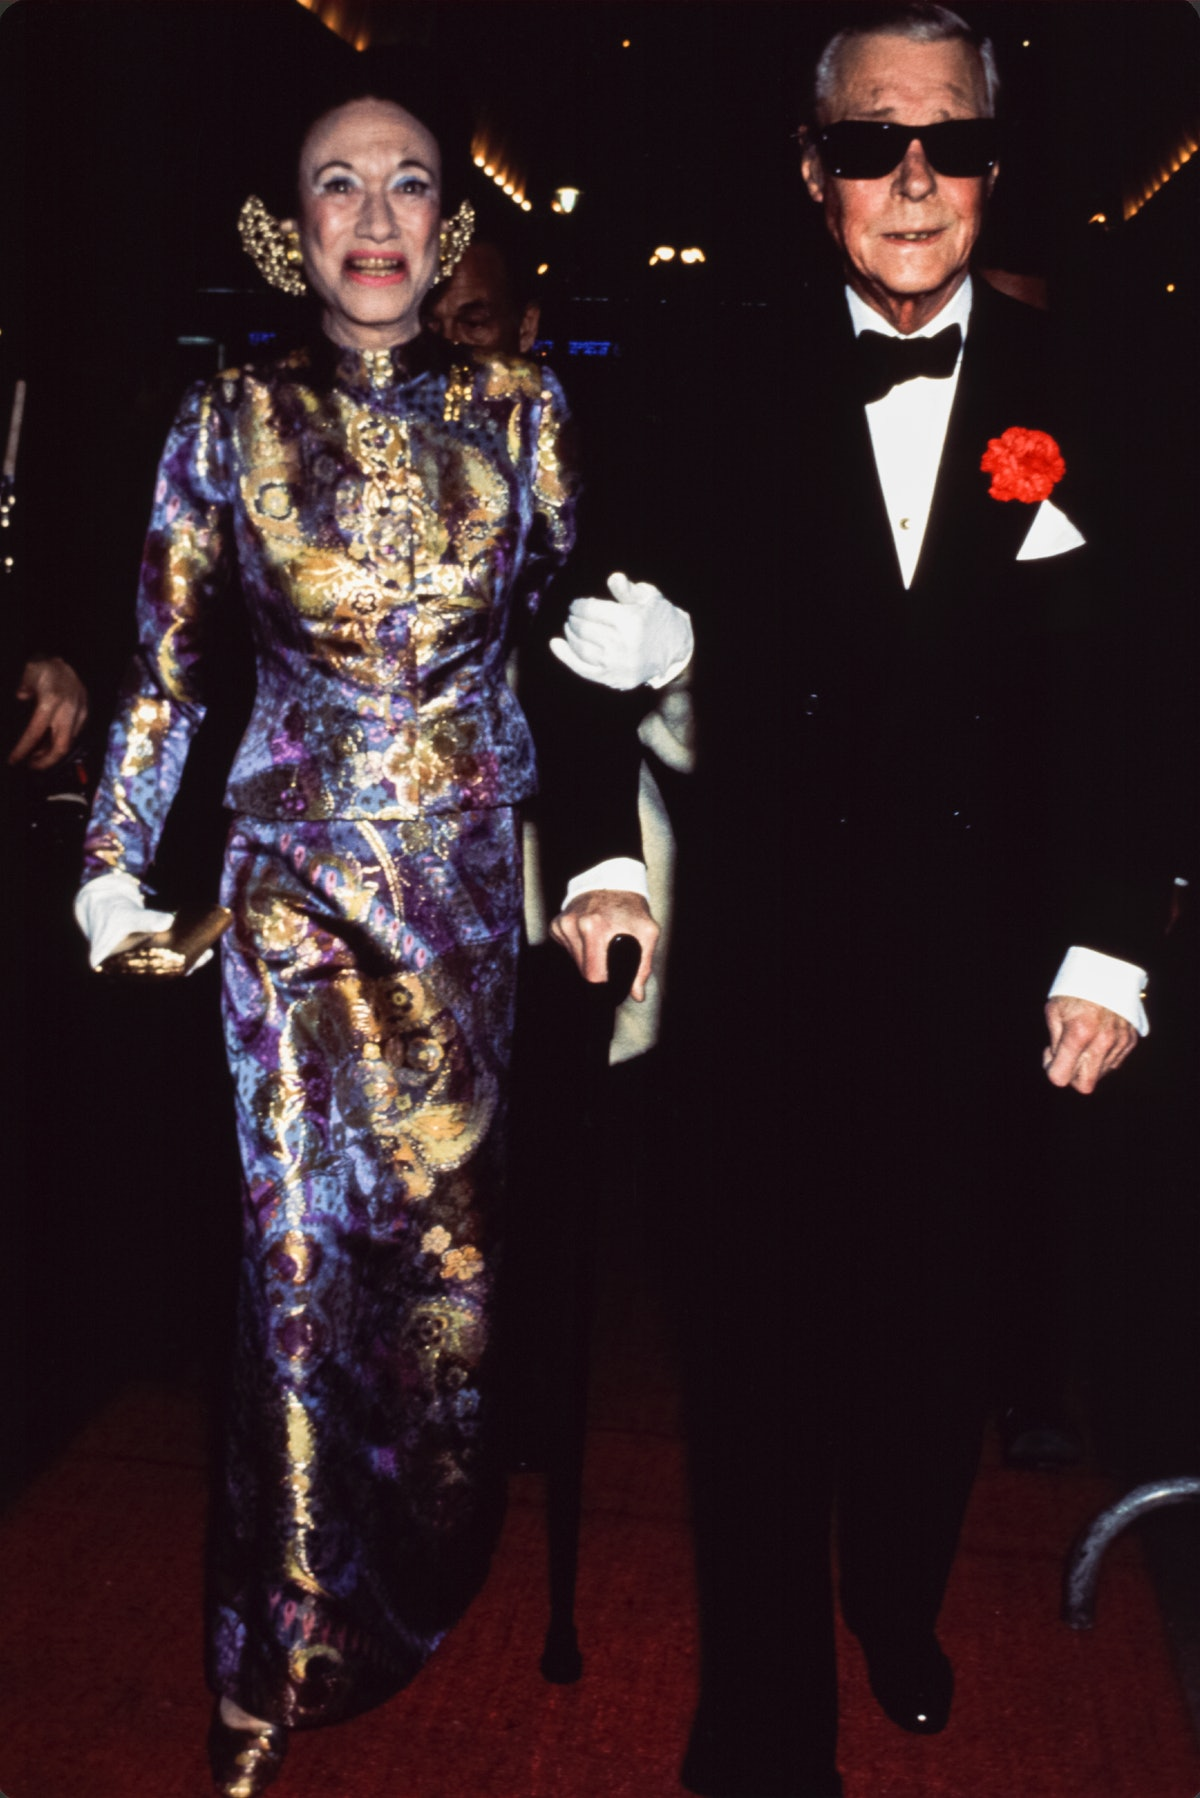 The Duke and Duchess of Windsor step out circa 1960.